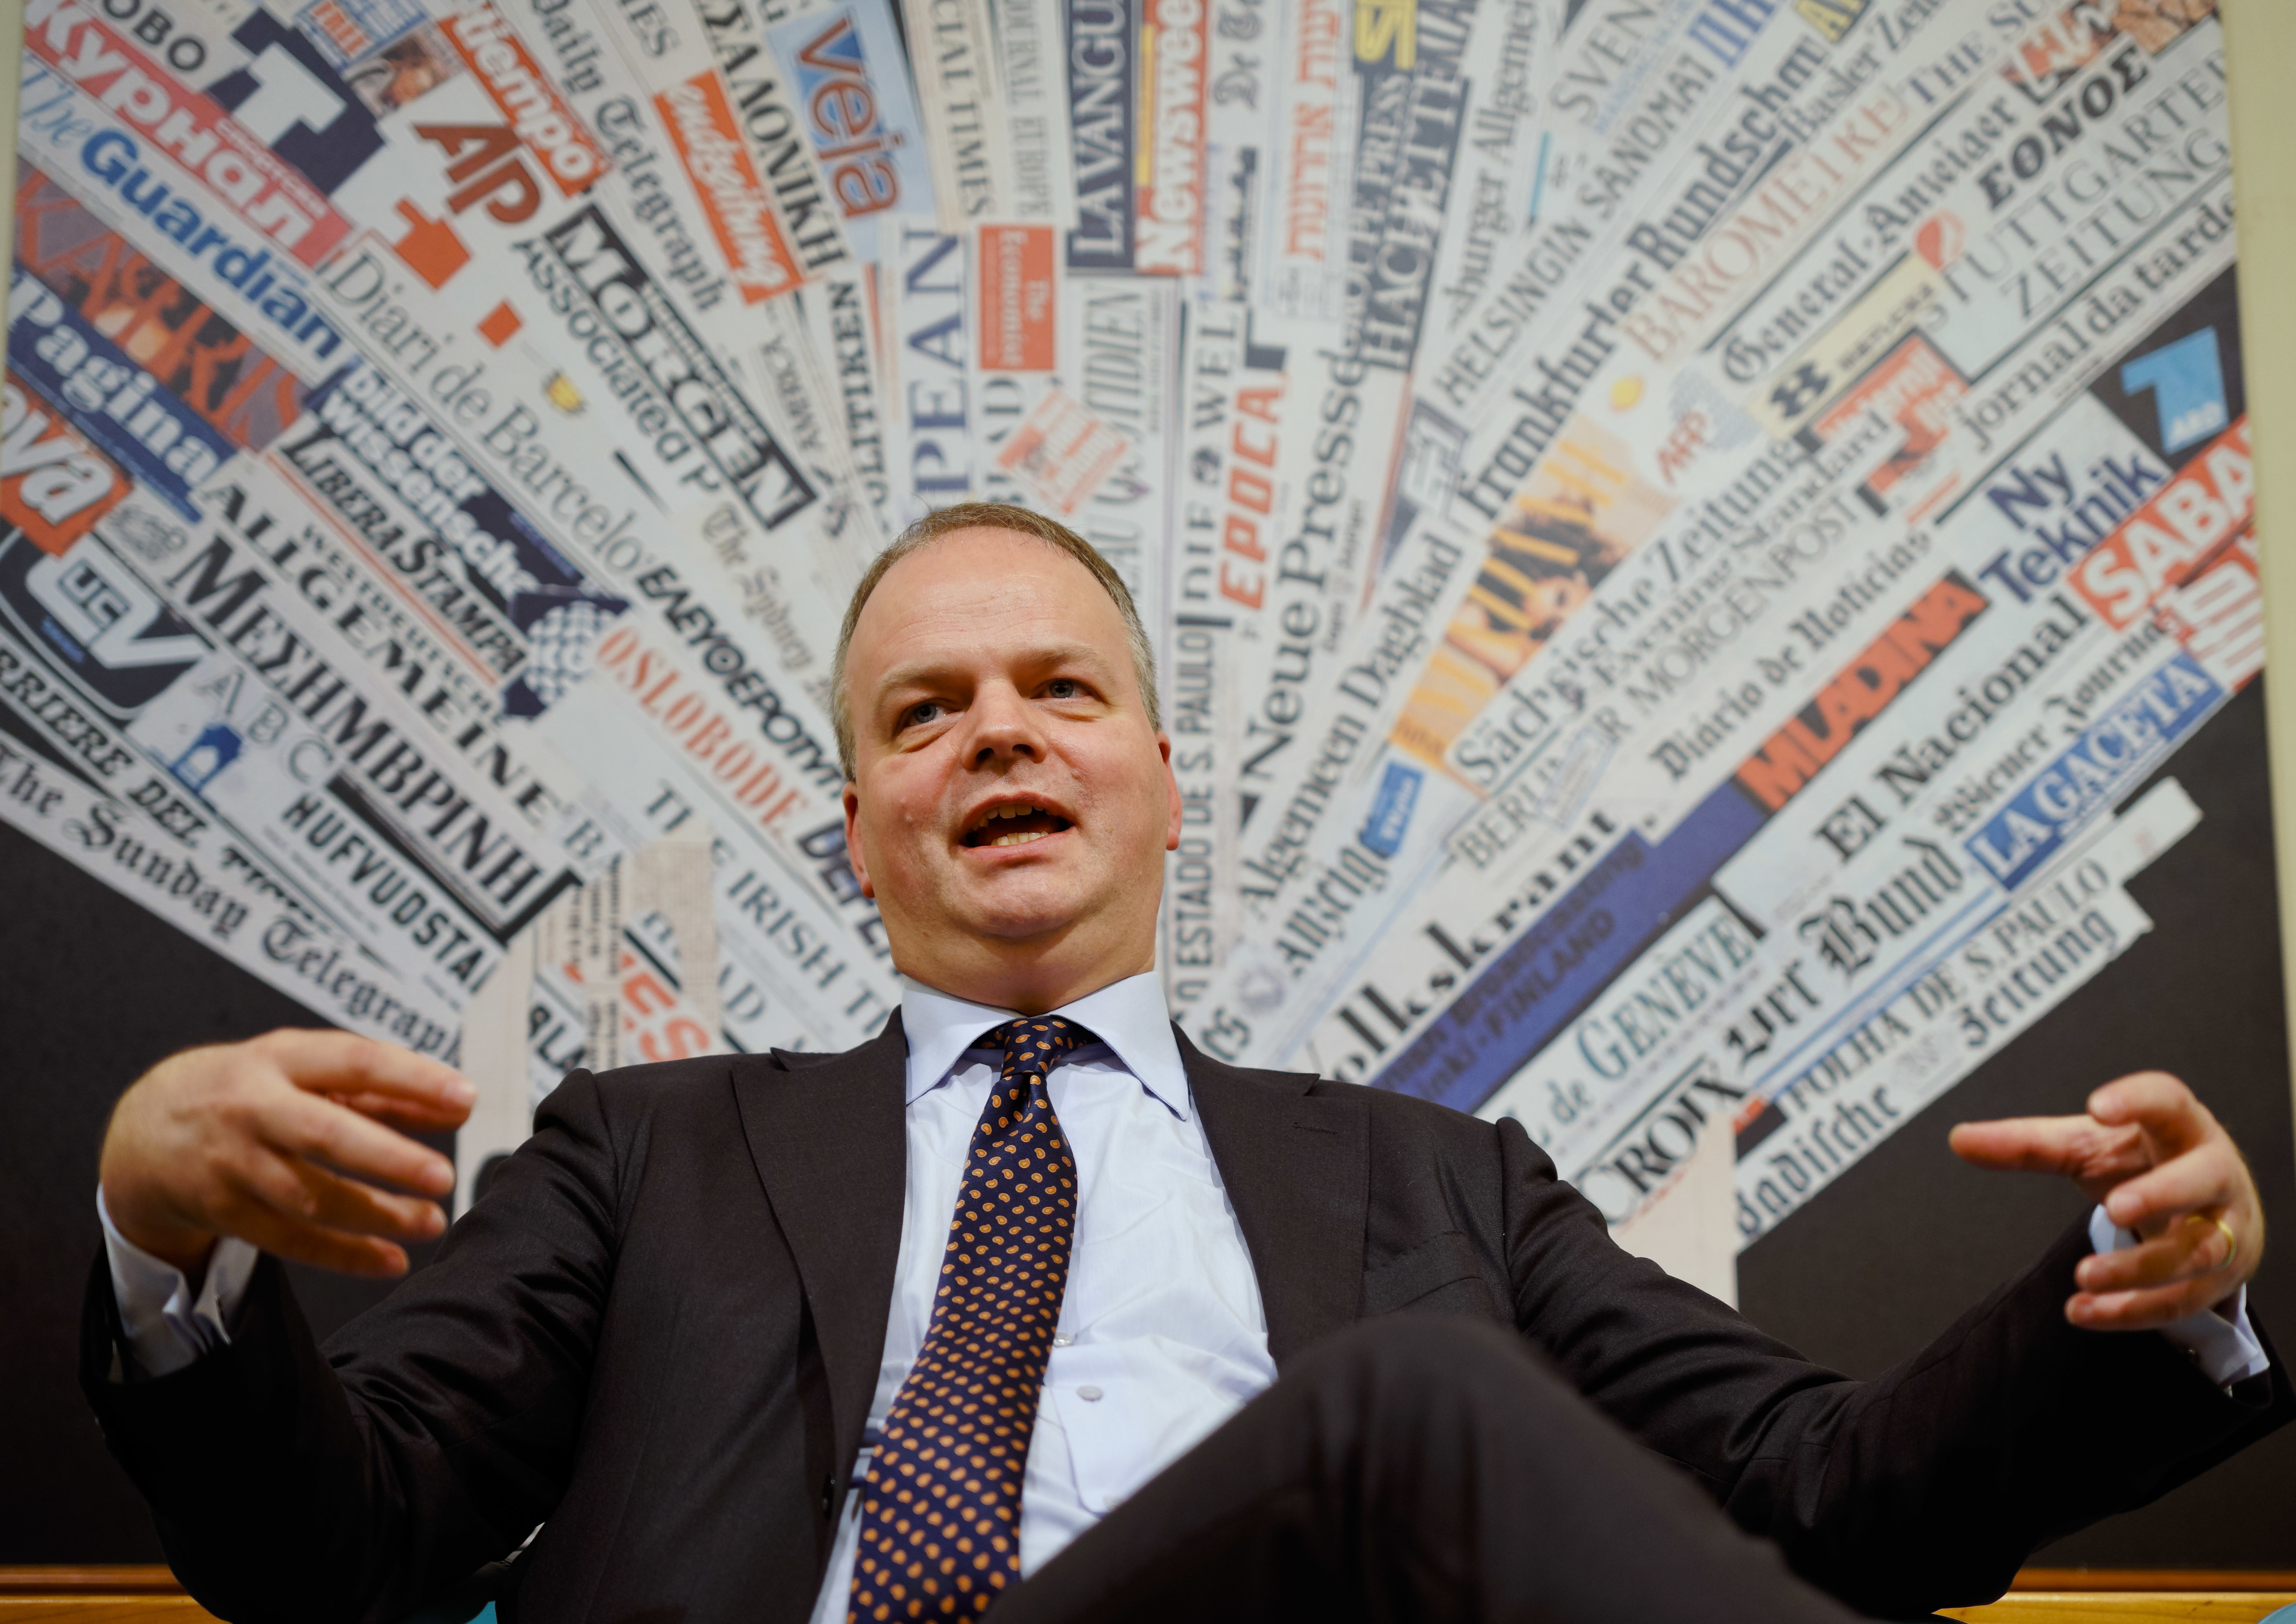 German art historian and director of the Uffizi galleries, Eike Schmidt, poses for portraits at the foreign press club in Rome, Wednesday, Dec. 5, 2018. The Uffizzi Galleries in Florence aims to discourage visitor overcrowding and ticket scalpers. Director Like Schmidt says Italy's most-visited art museum is meeting with Italian privacy guarantors to devise ways to use purchasers' photos to thwart scalpers looking to resell tickets at exorbitant prices. (AP Photo/Domenico Stinellis)